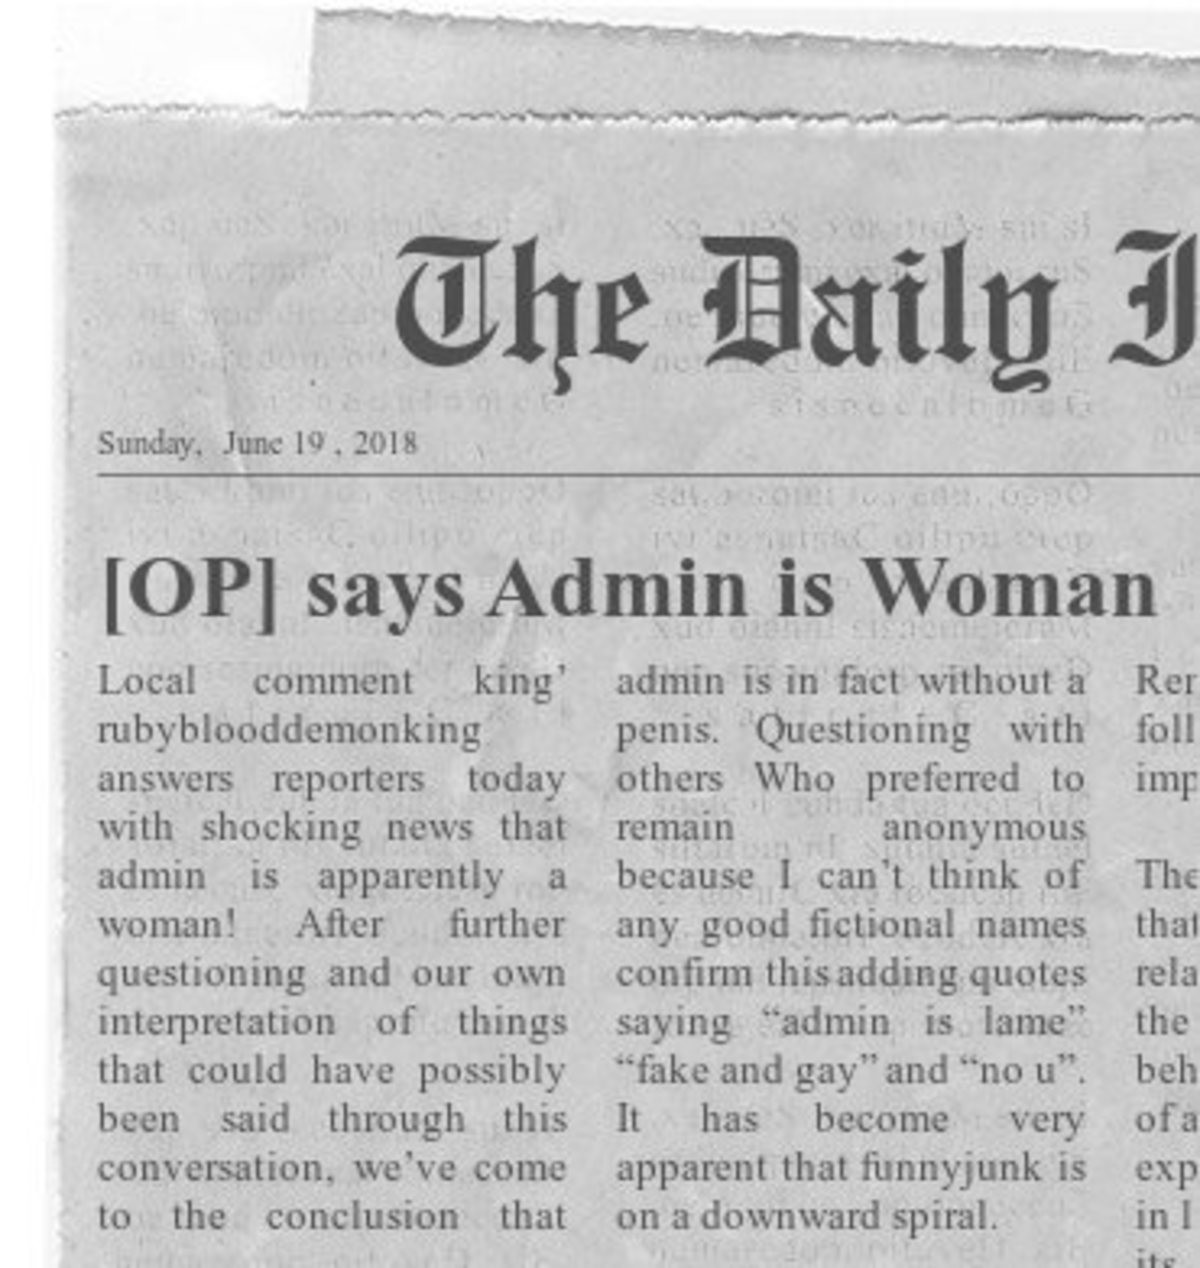 This just in!. Released in a press conference yesterday, admin responded out of context to make it look like she/he agrees. For Ruby's protection identities hav